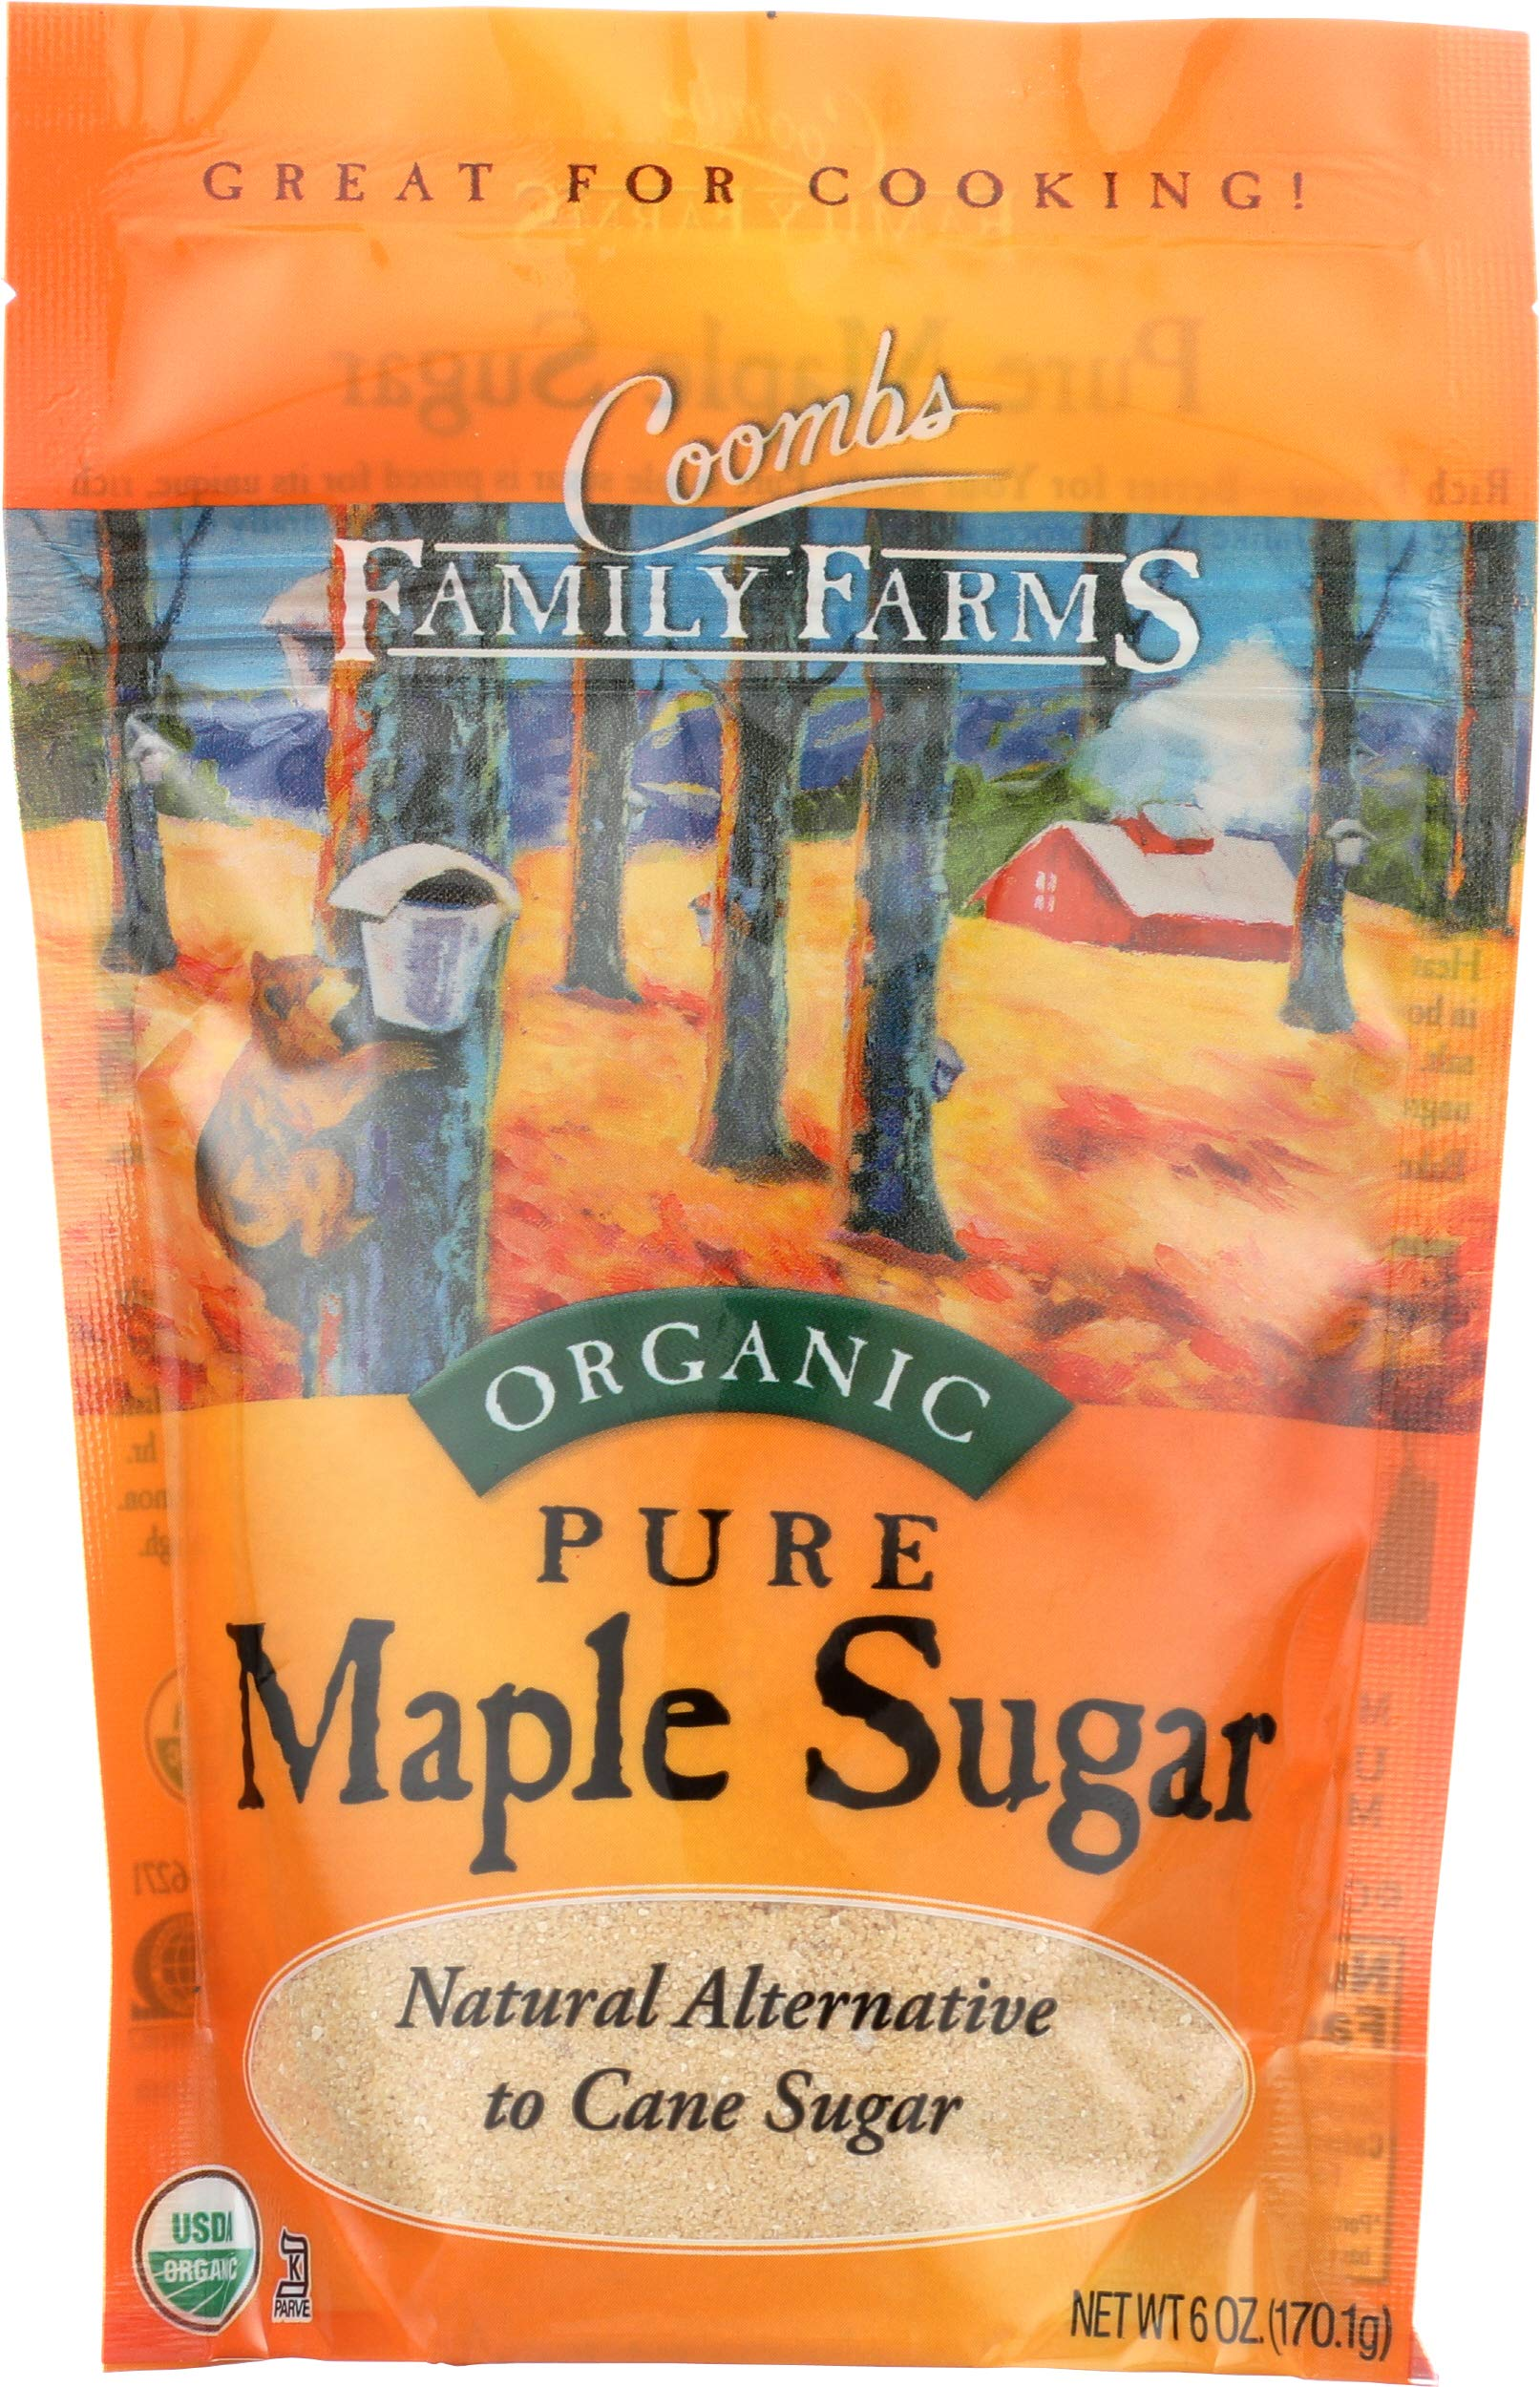 Coombs Family Farms Organic Pure Maple Sugar, Original, 6 oz